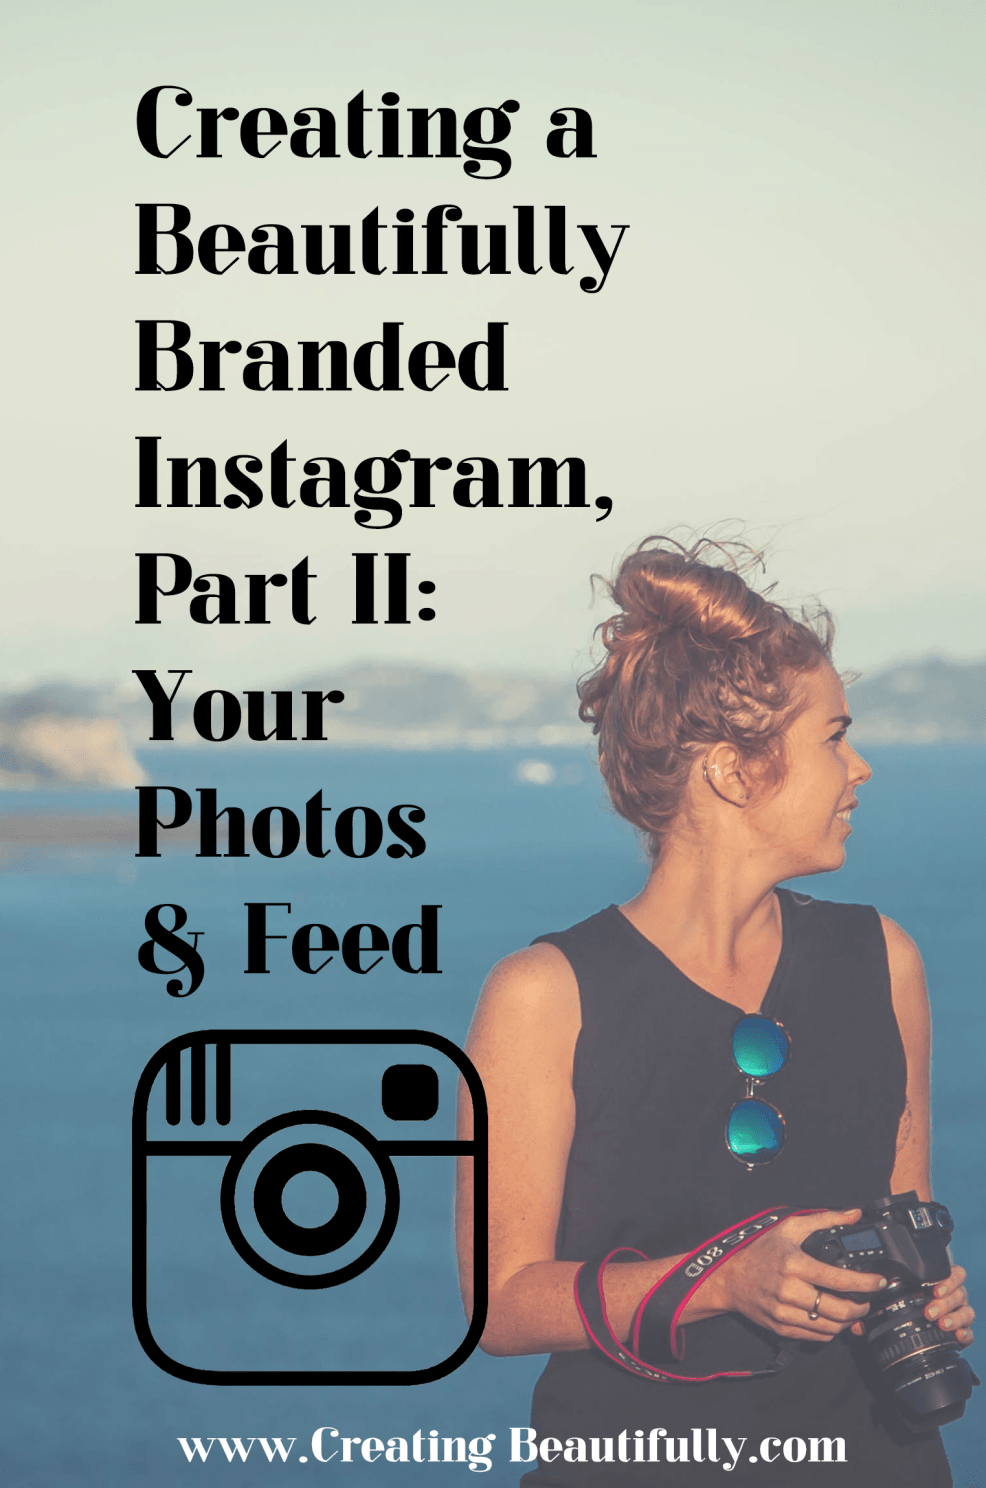 I need to watch these videos! Creating a Beautifully Branded Instagram Part II: Your Photos & Feed